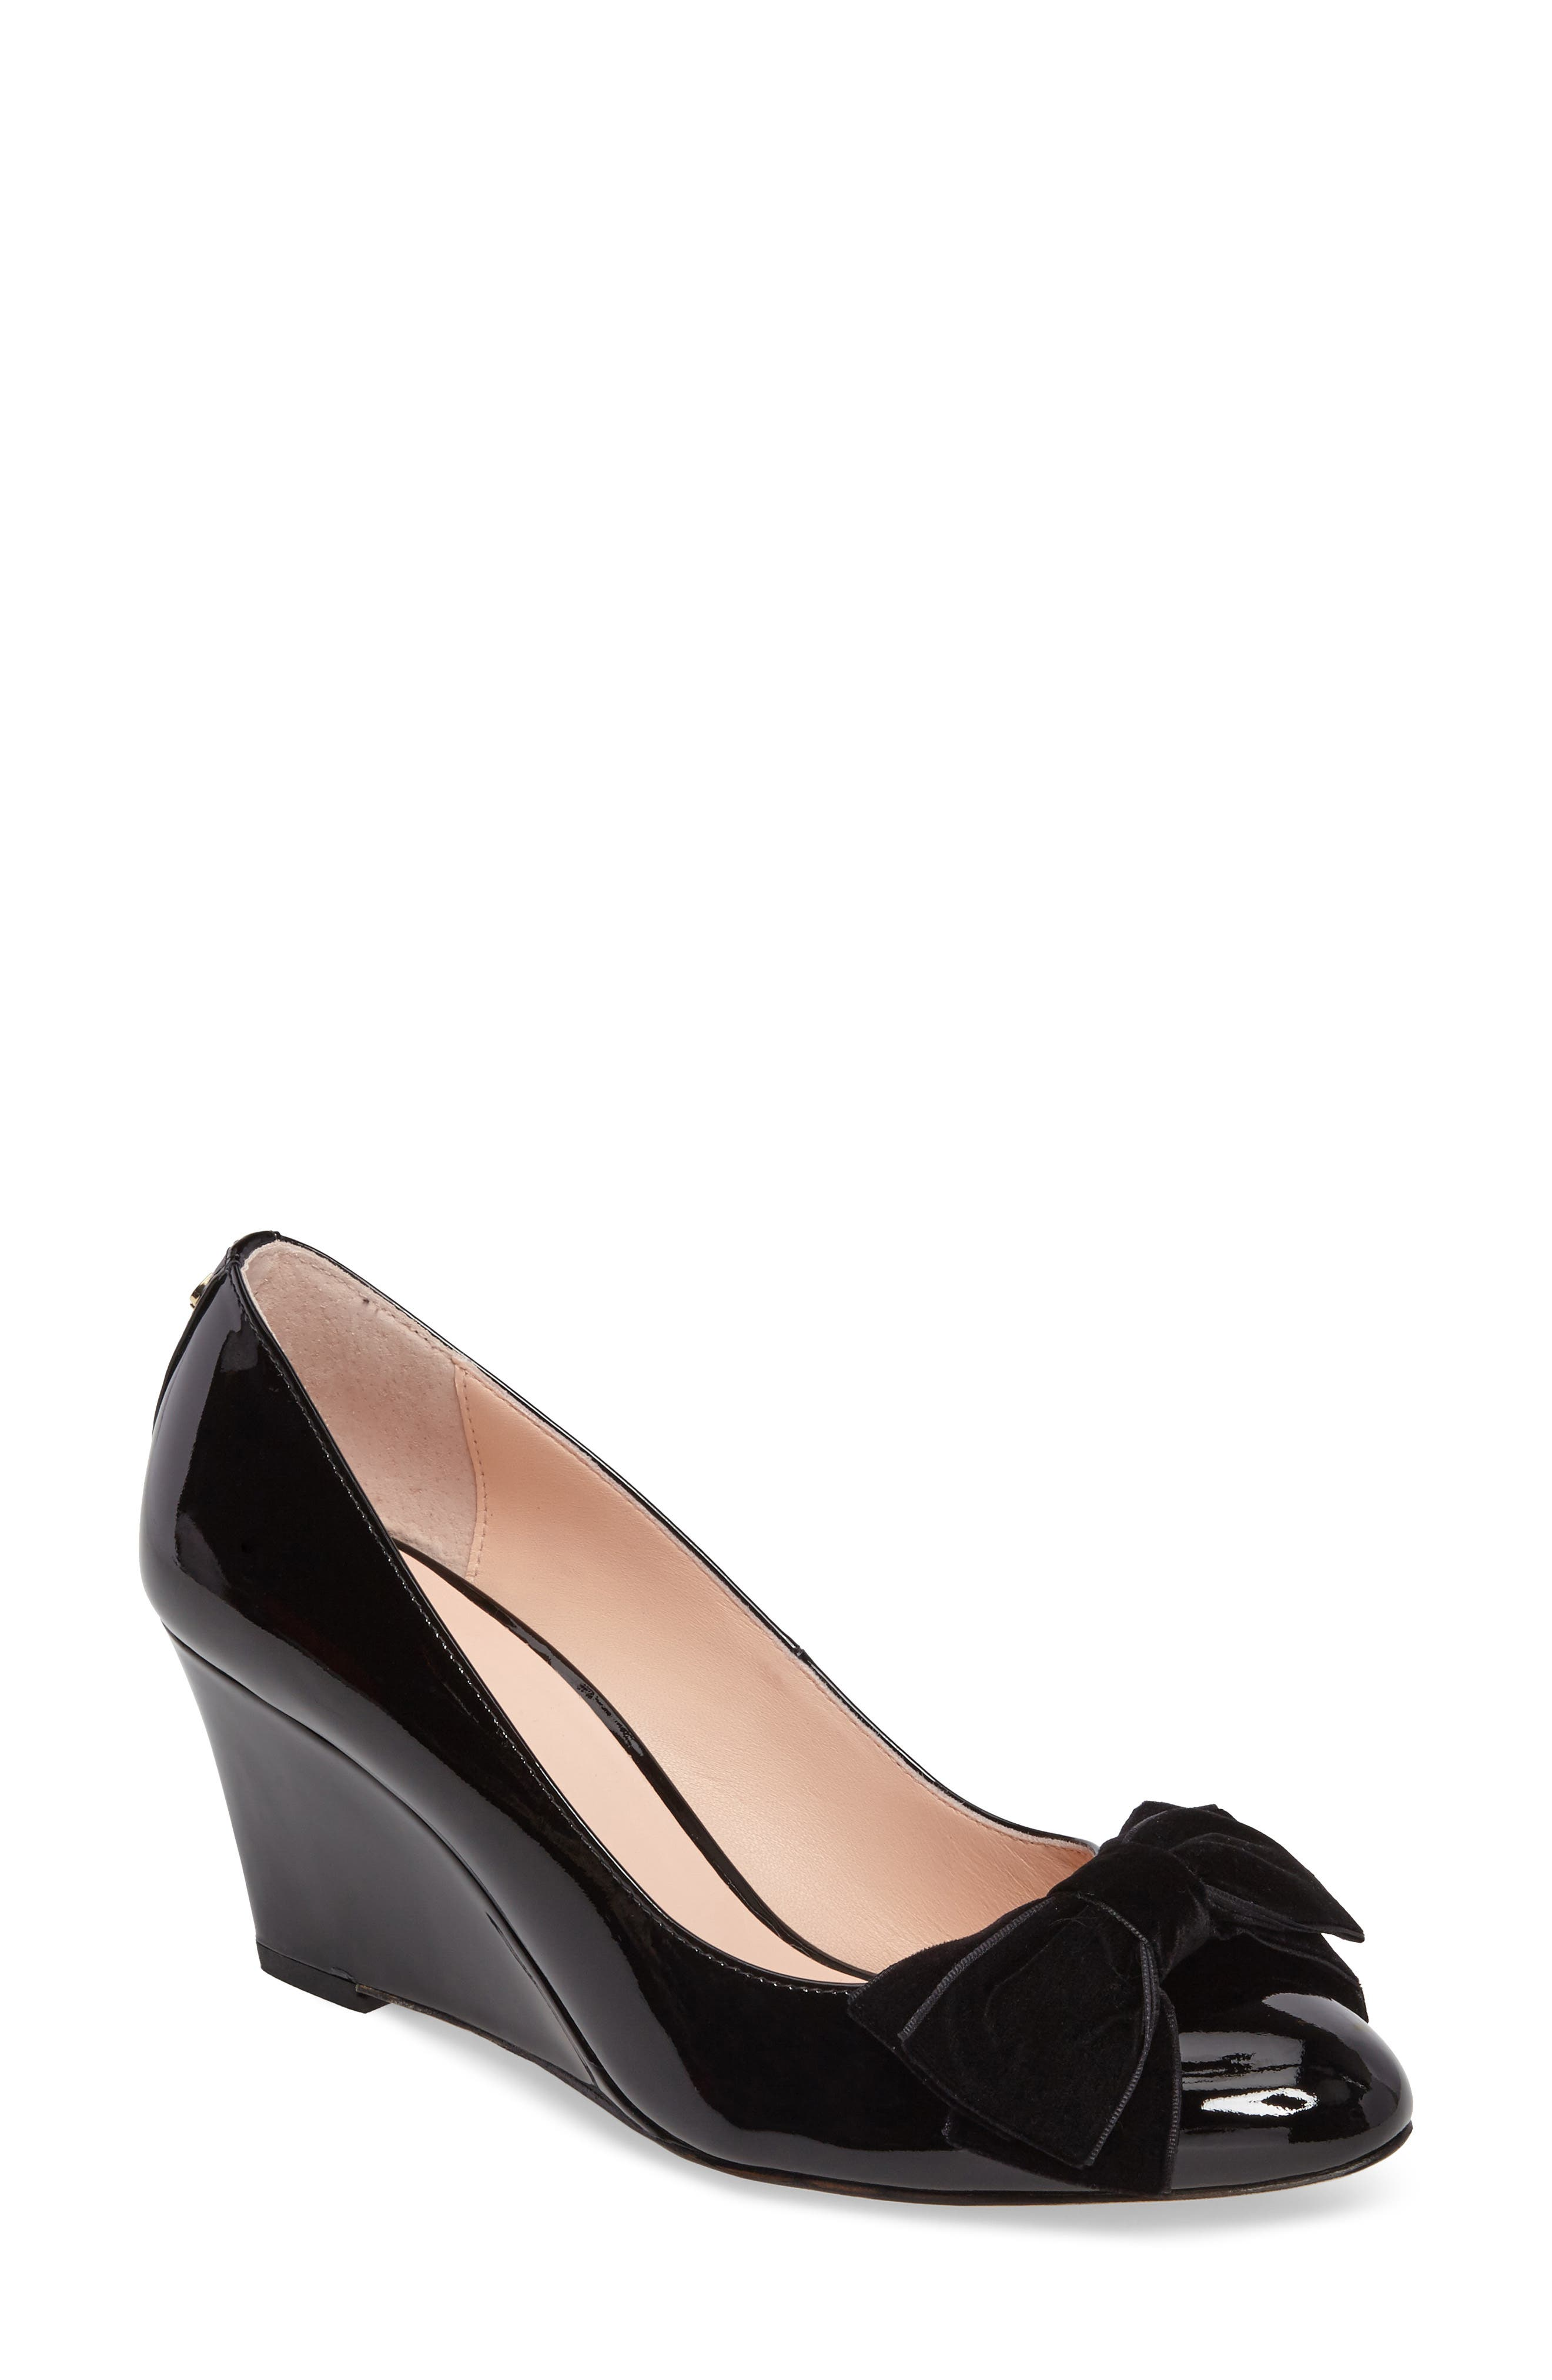 Alternate Image 1 Selected - kate spade new york weller pump (Women)